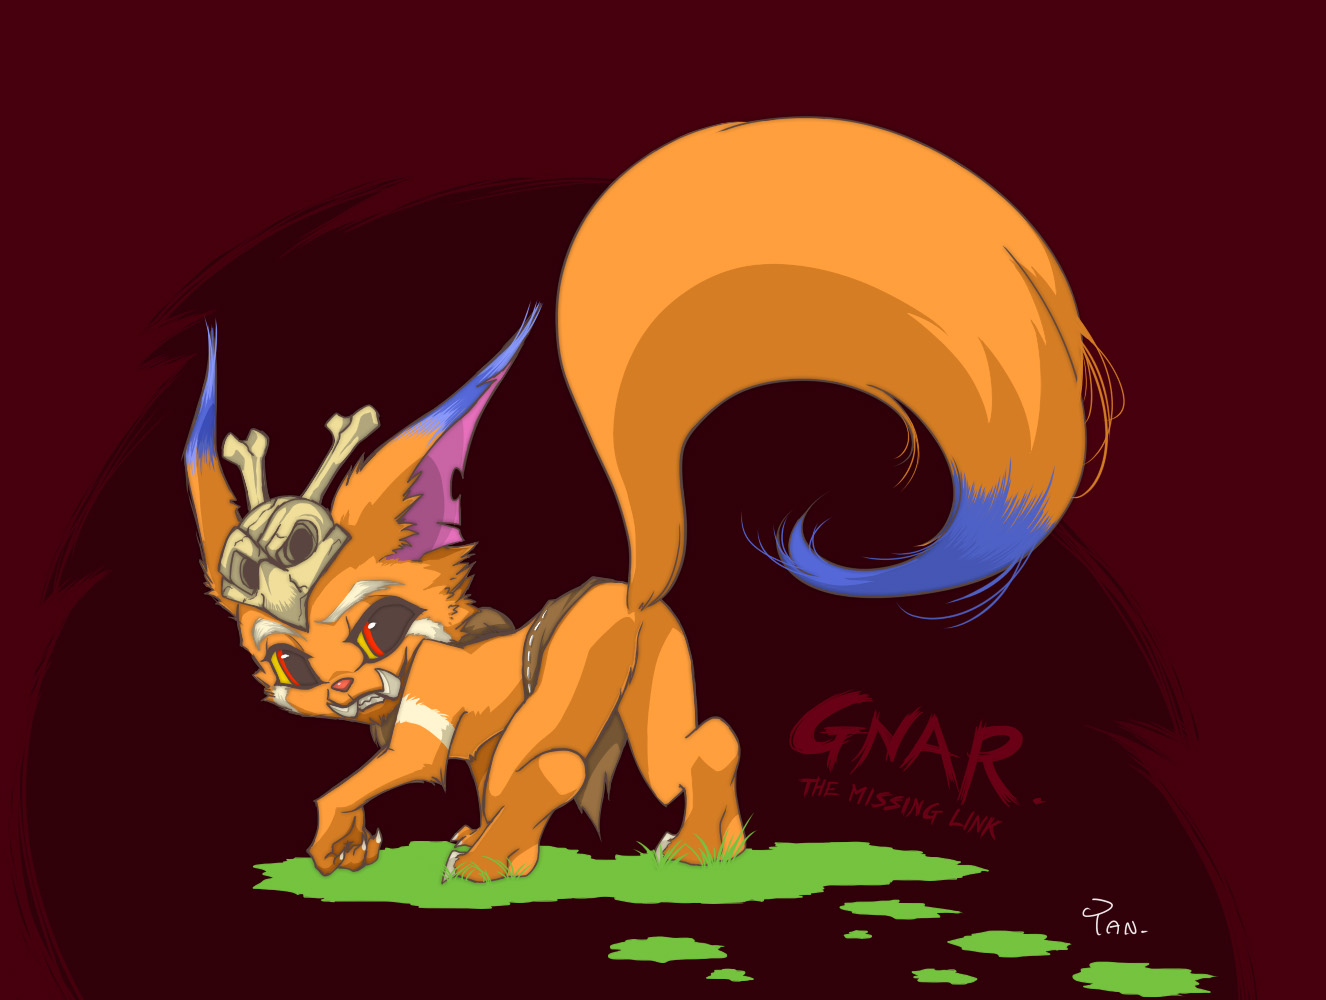 GNAR by yan531 on DeviantArt